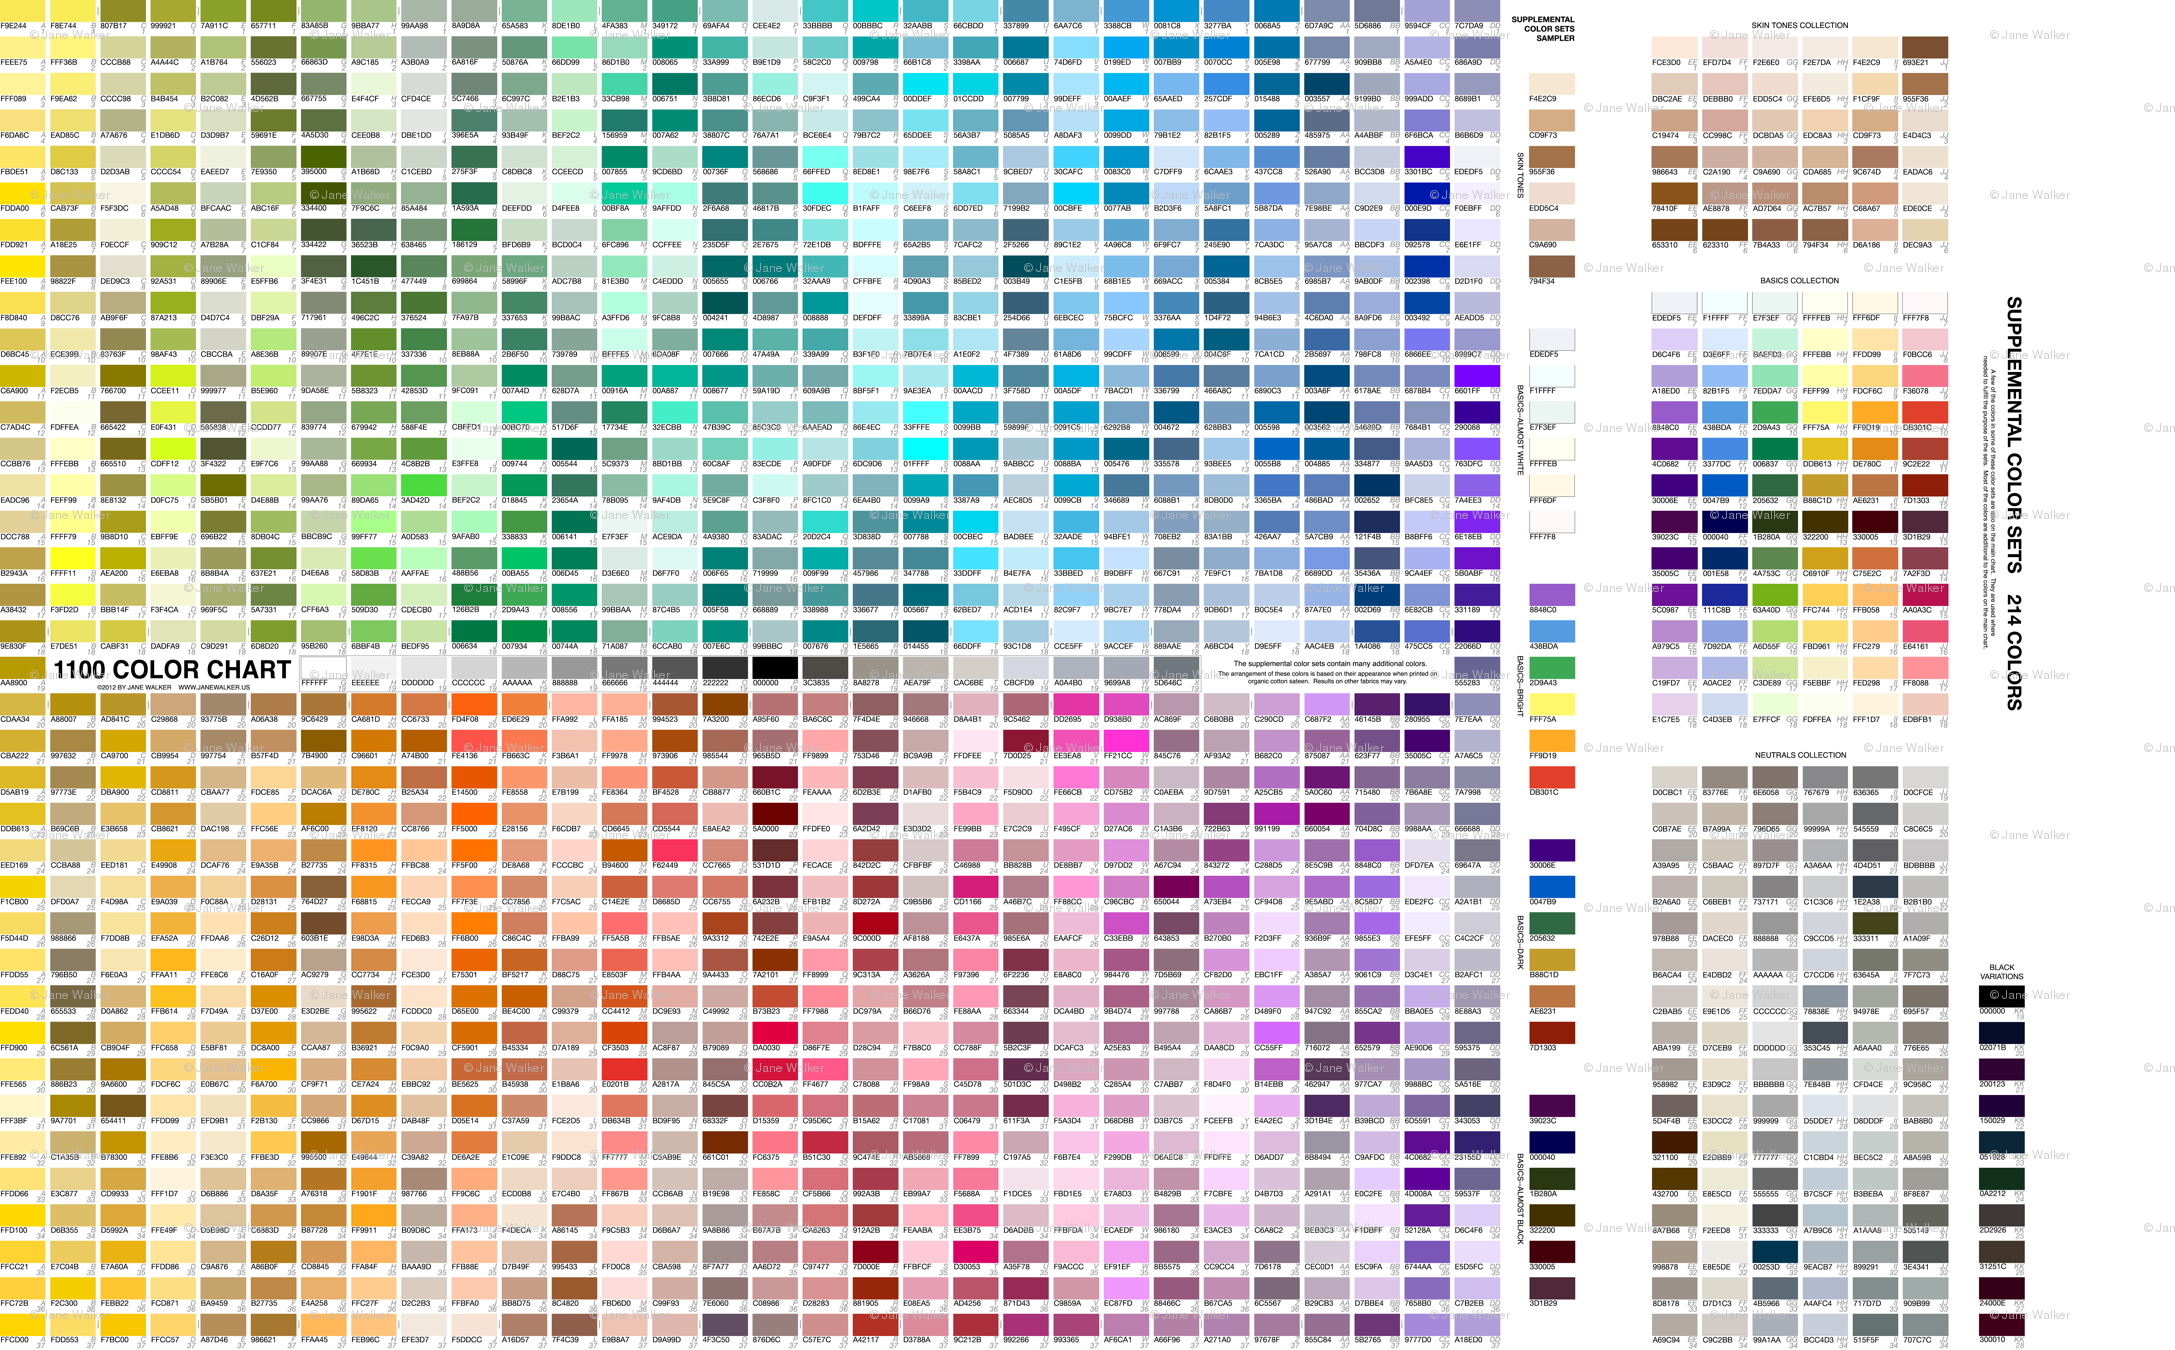 Practical 1100 color chart with supplemental color sets 2012 by practical 1100 color chart with supplemental color sets 2012 by jane walker fabric artbyjanewalker spoonflower nvjuhfo Images